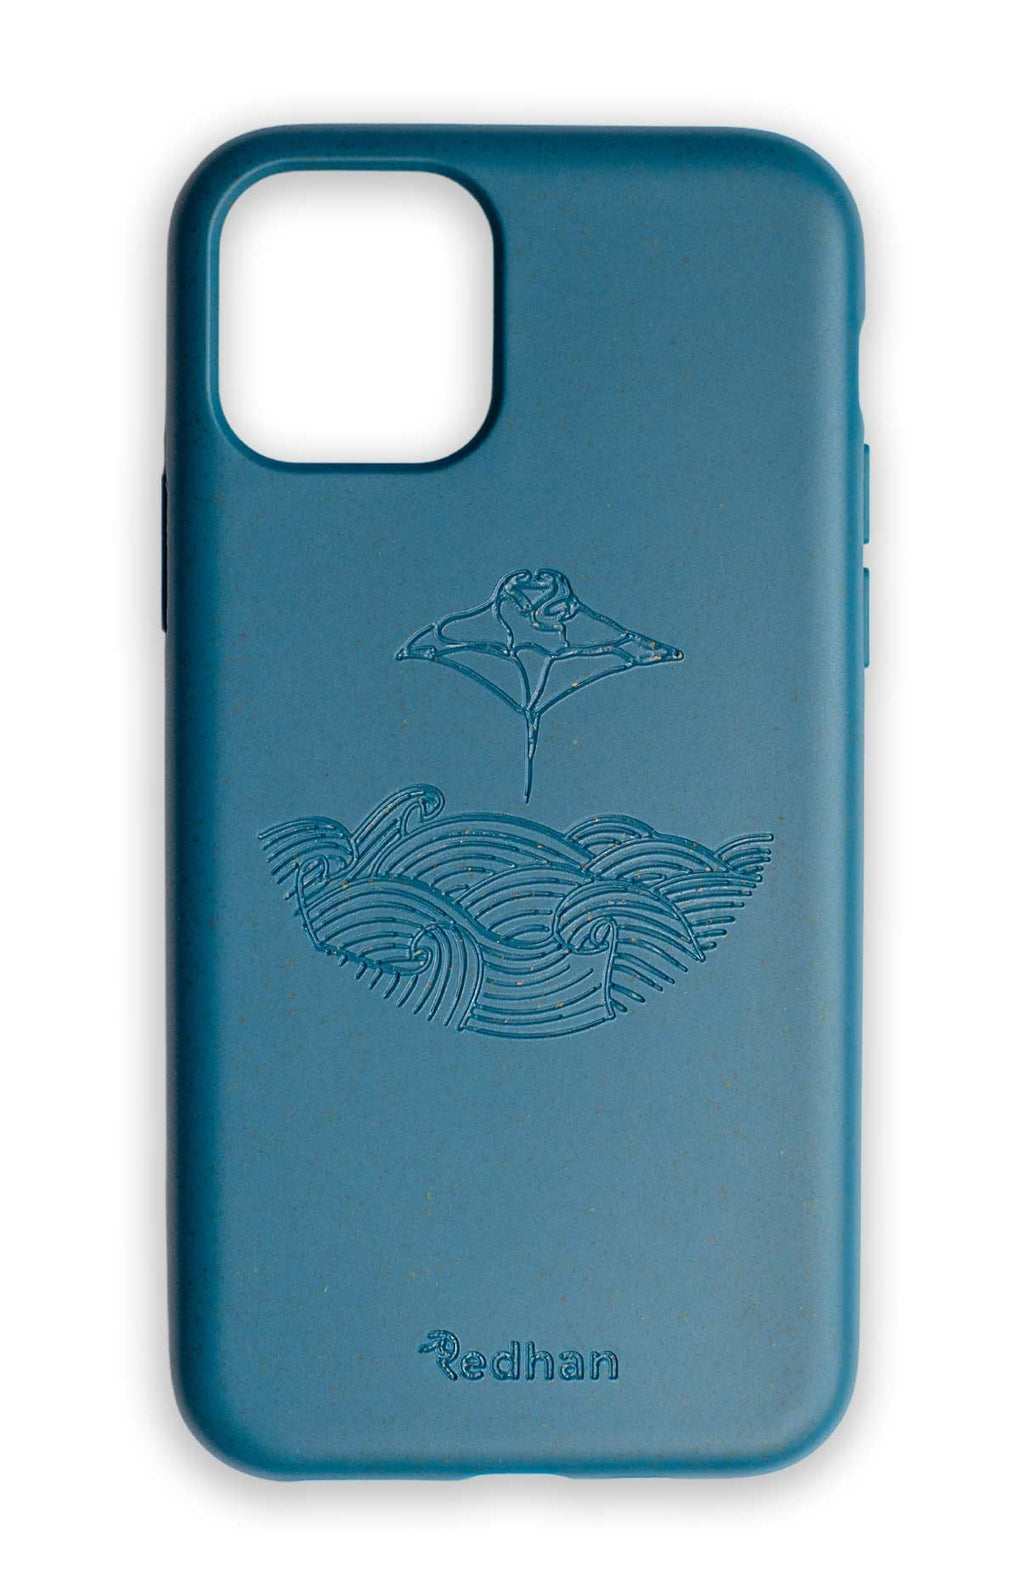 Manta Ray in Blue Navy - iPhone 11 Pro